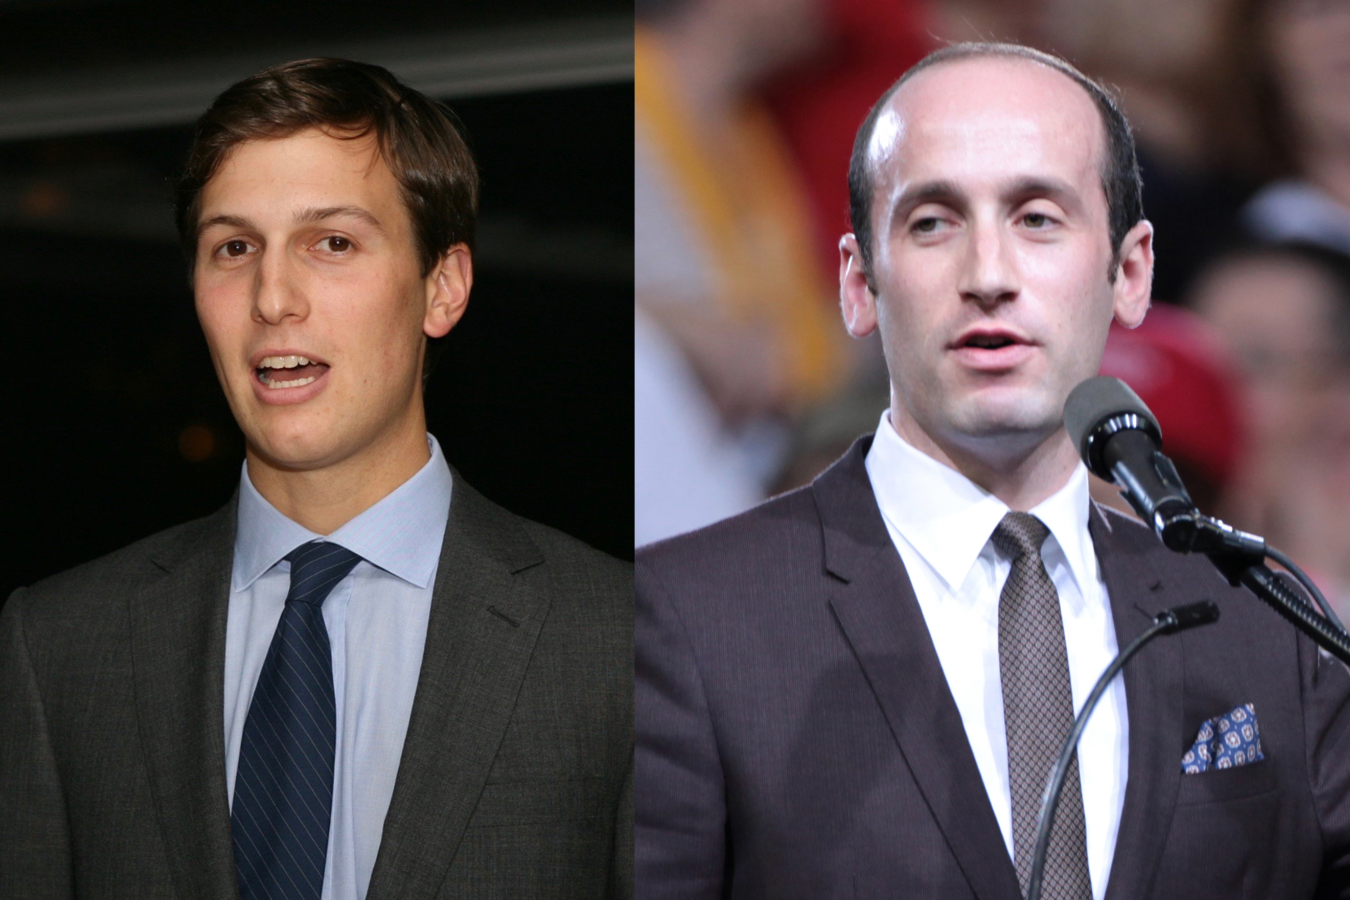 Trump Senior Advisors: Jared Kushner and Stephen Miller, both with Jewish immigrant ancestry.